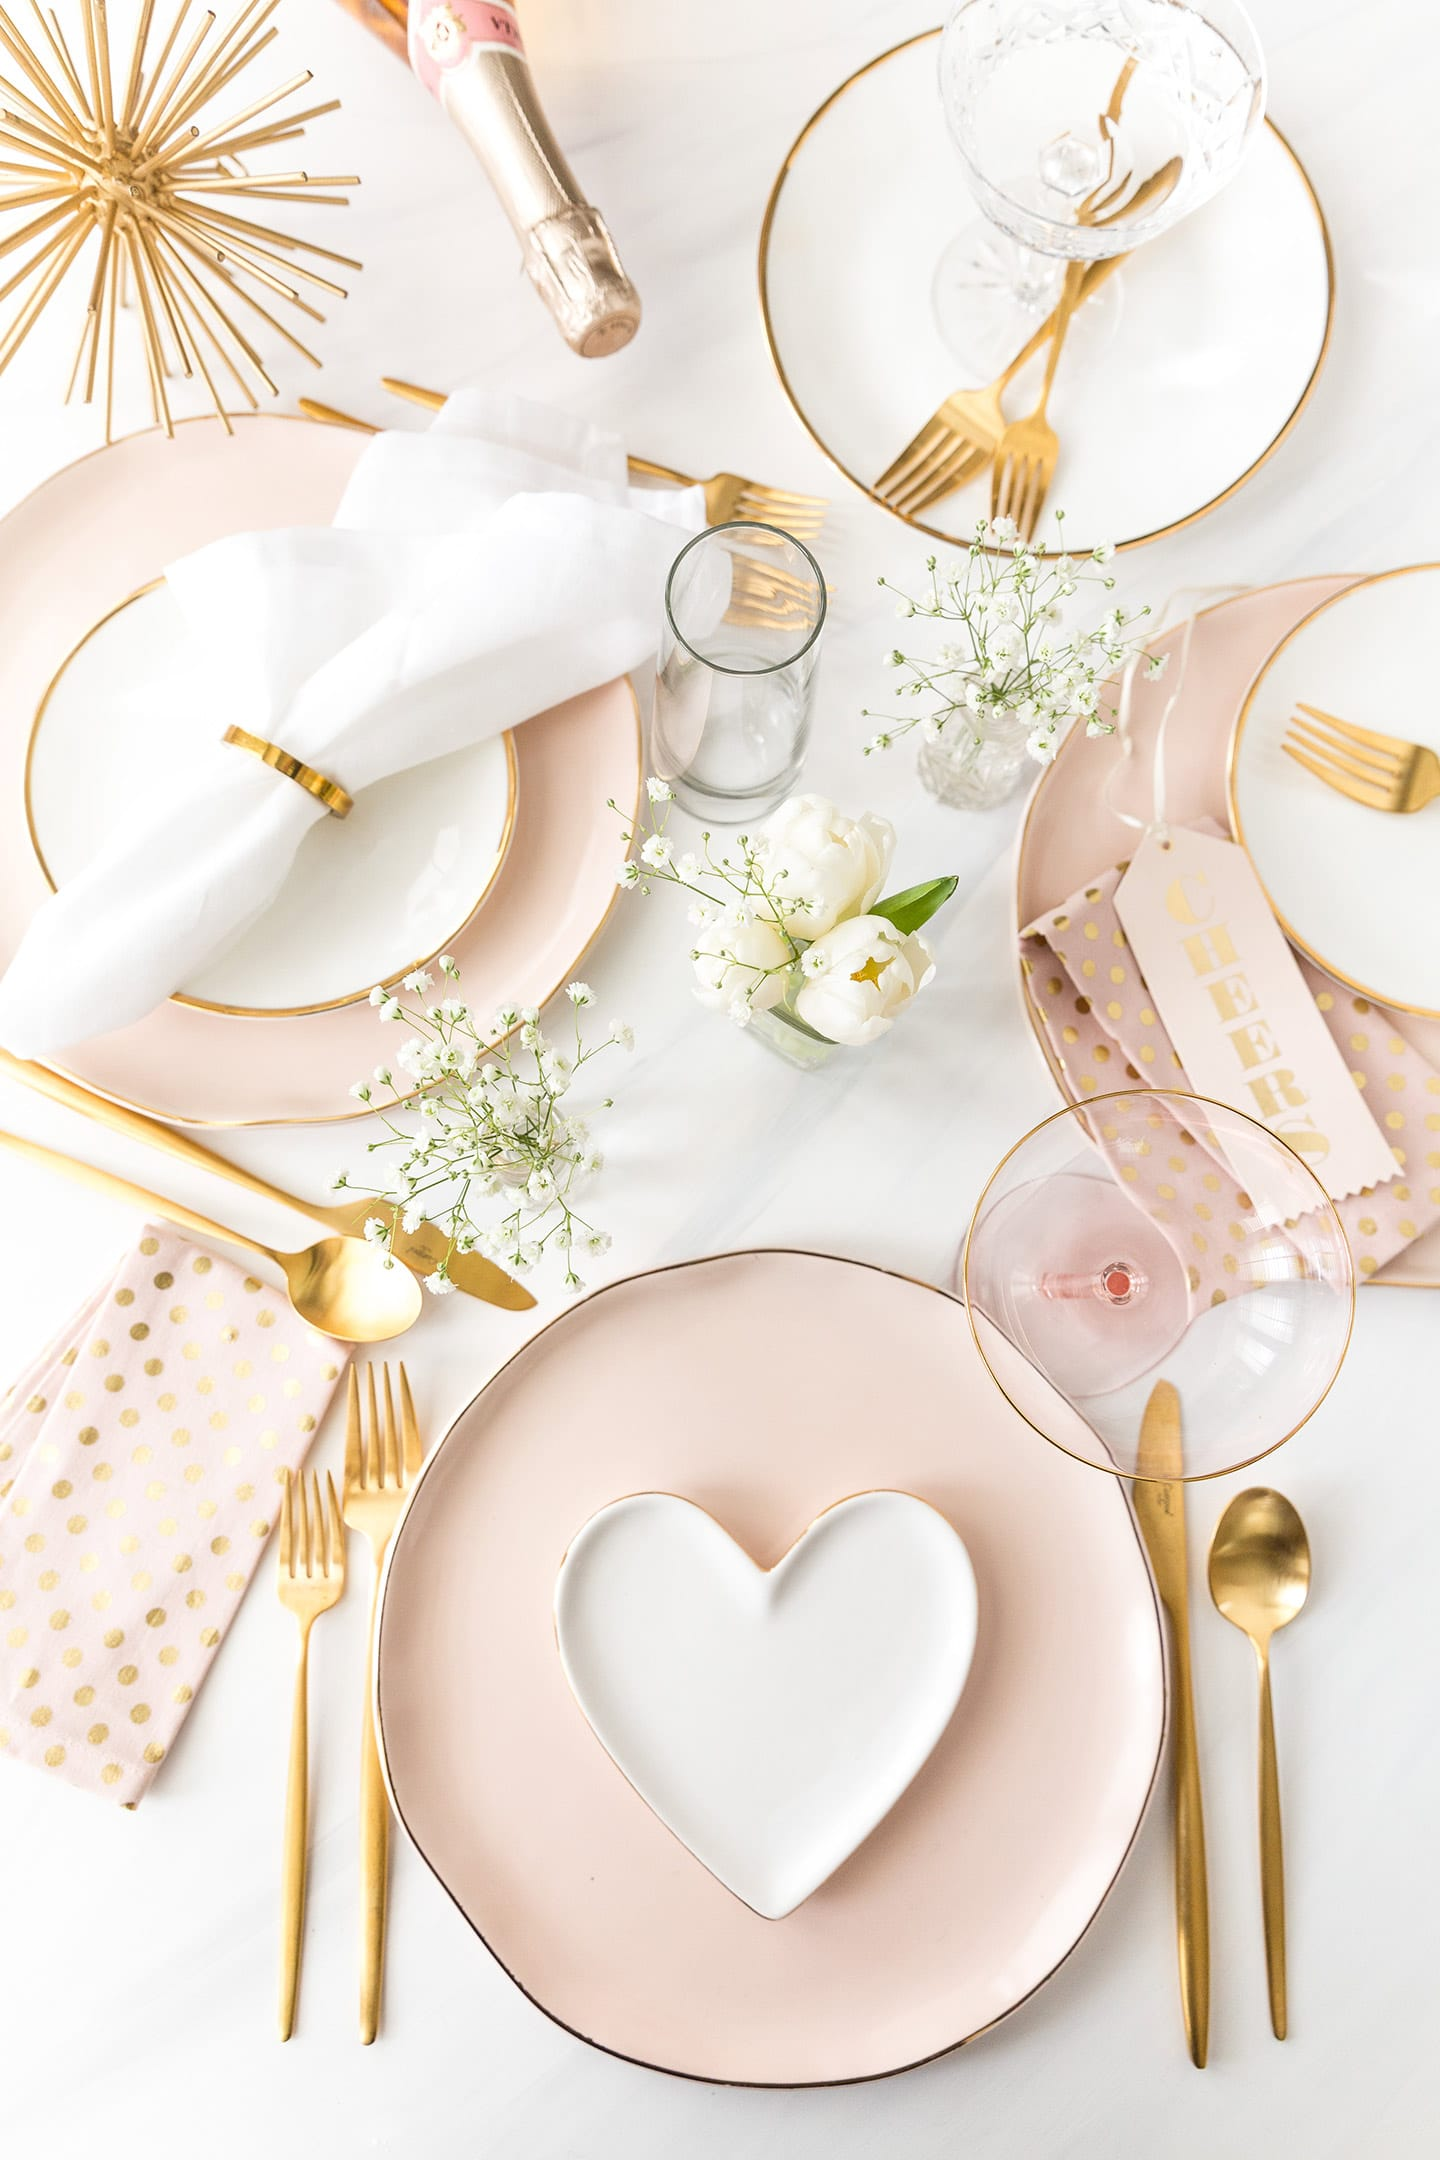 beautiful valentines day tablescape with light pink and white heart plates and gold silverware